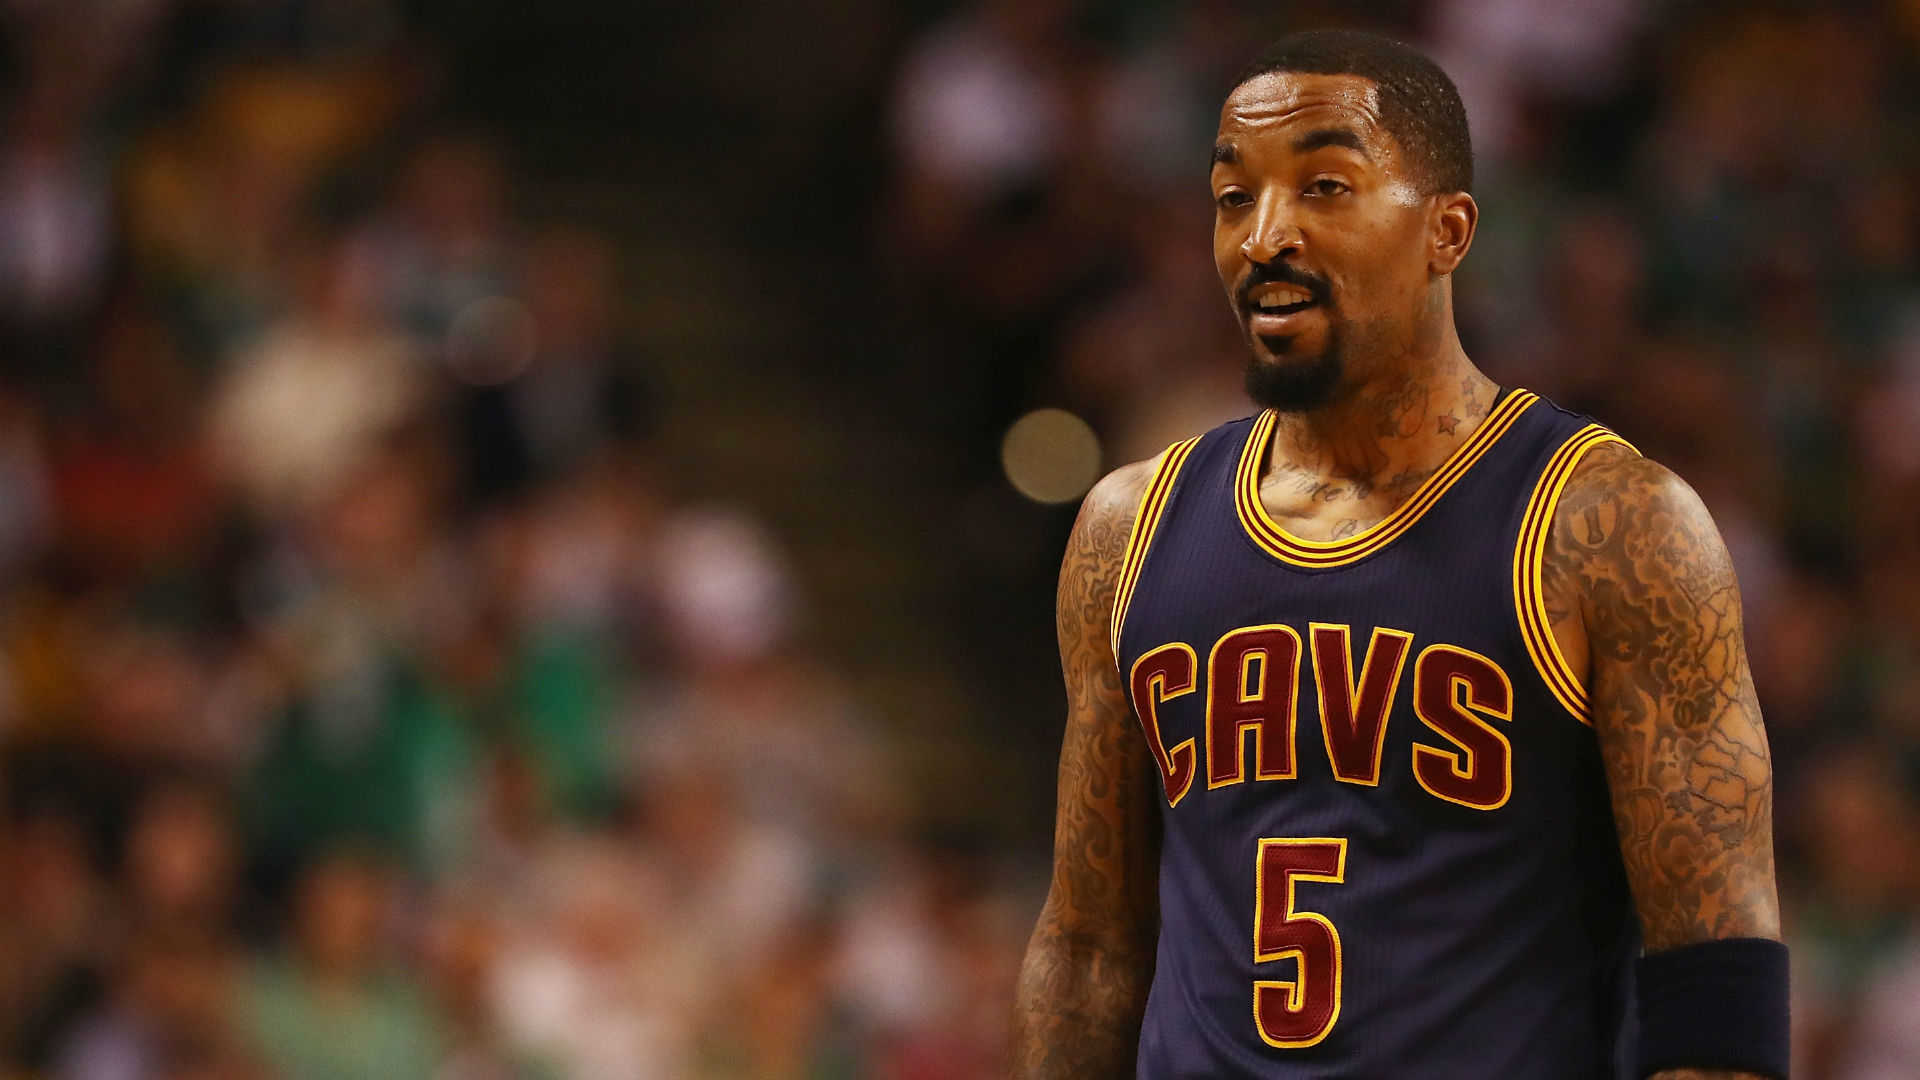 Lakers free agency rumors: JR Smith could be reunited with LeBron James